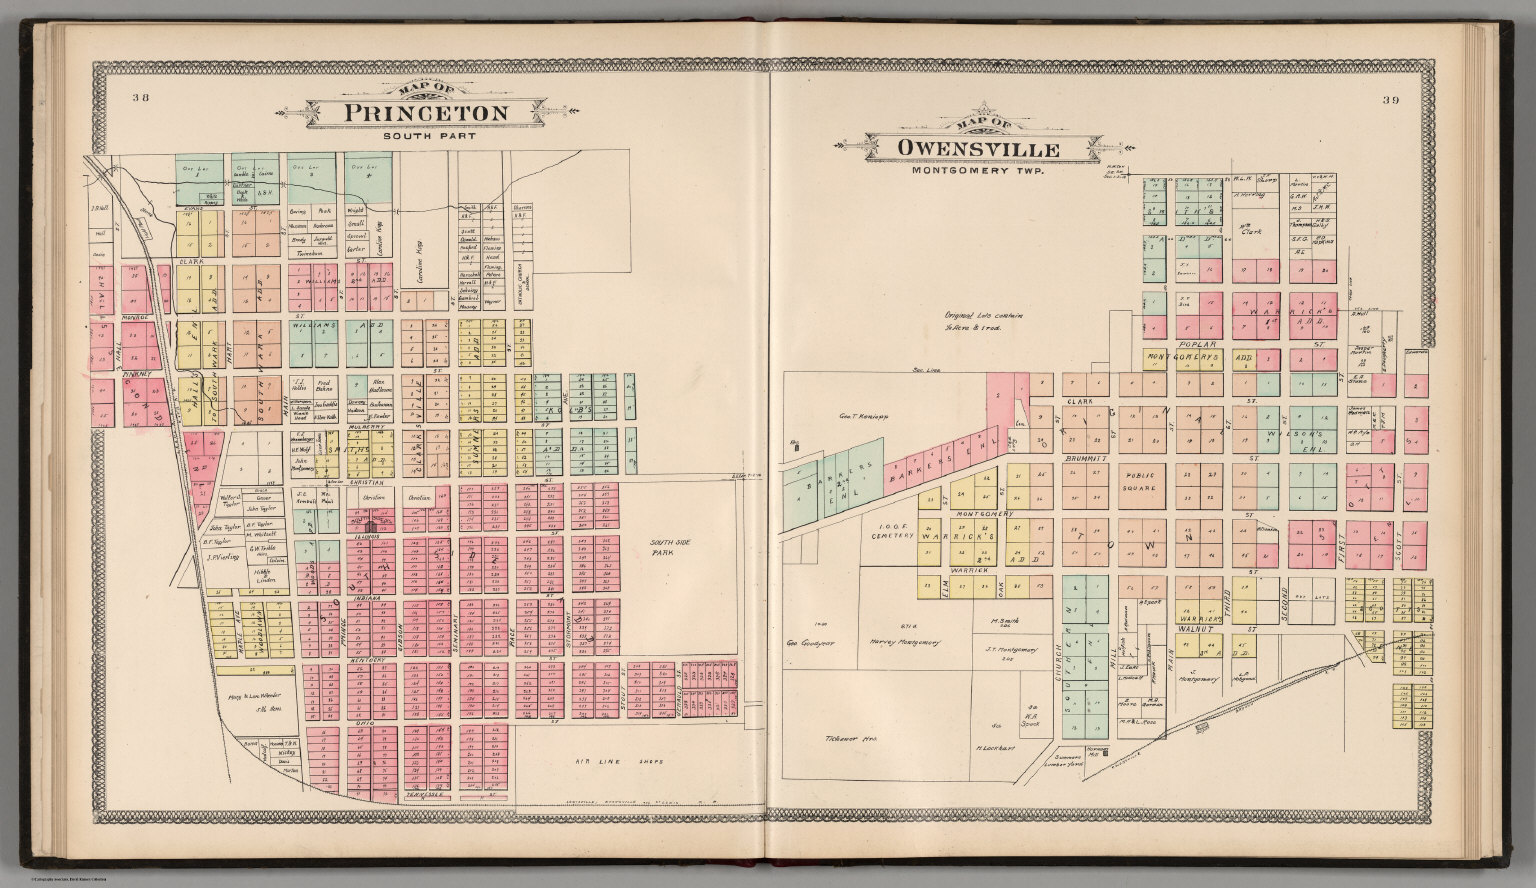 Gibson County Indiana Map.Princeton South Part Map Of Owensville Montgomery Township